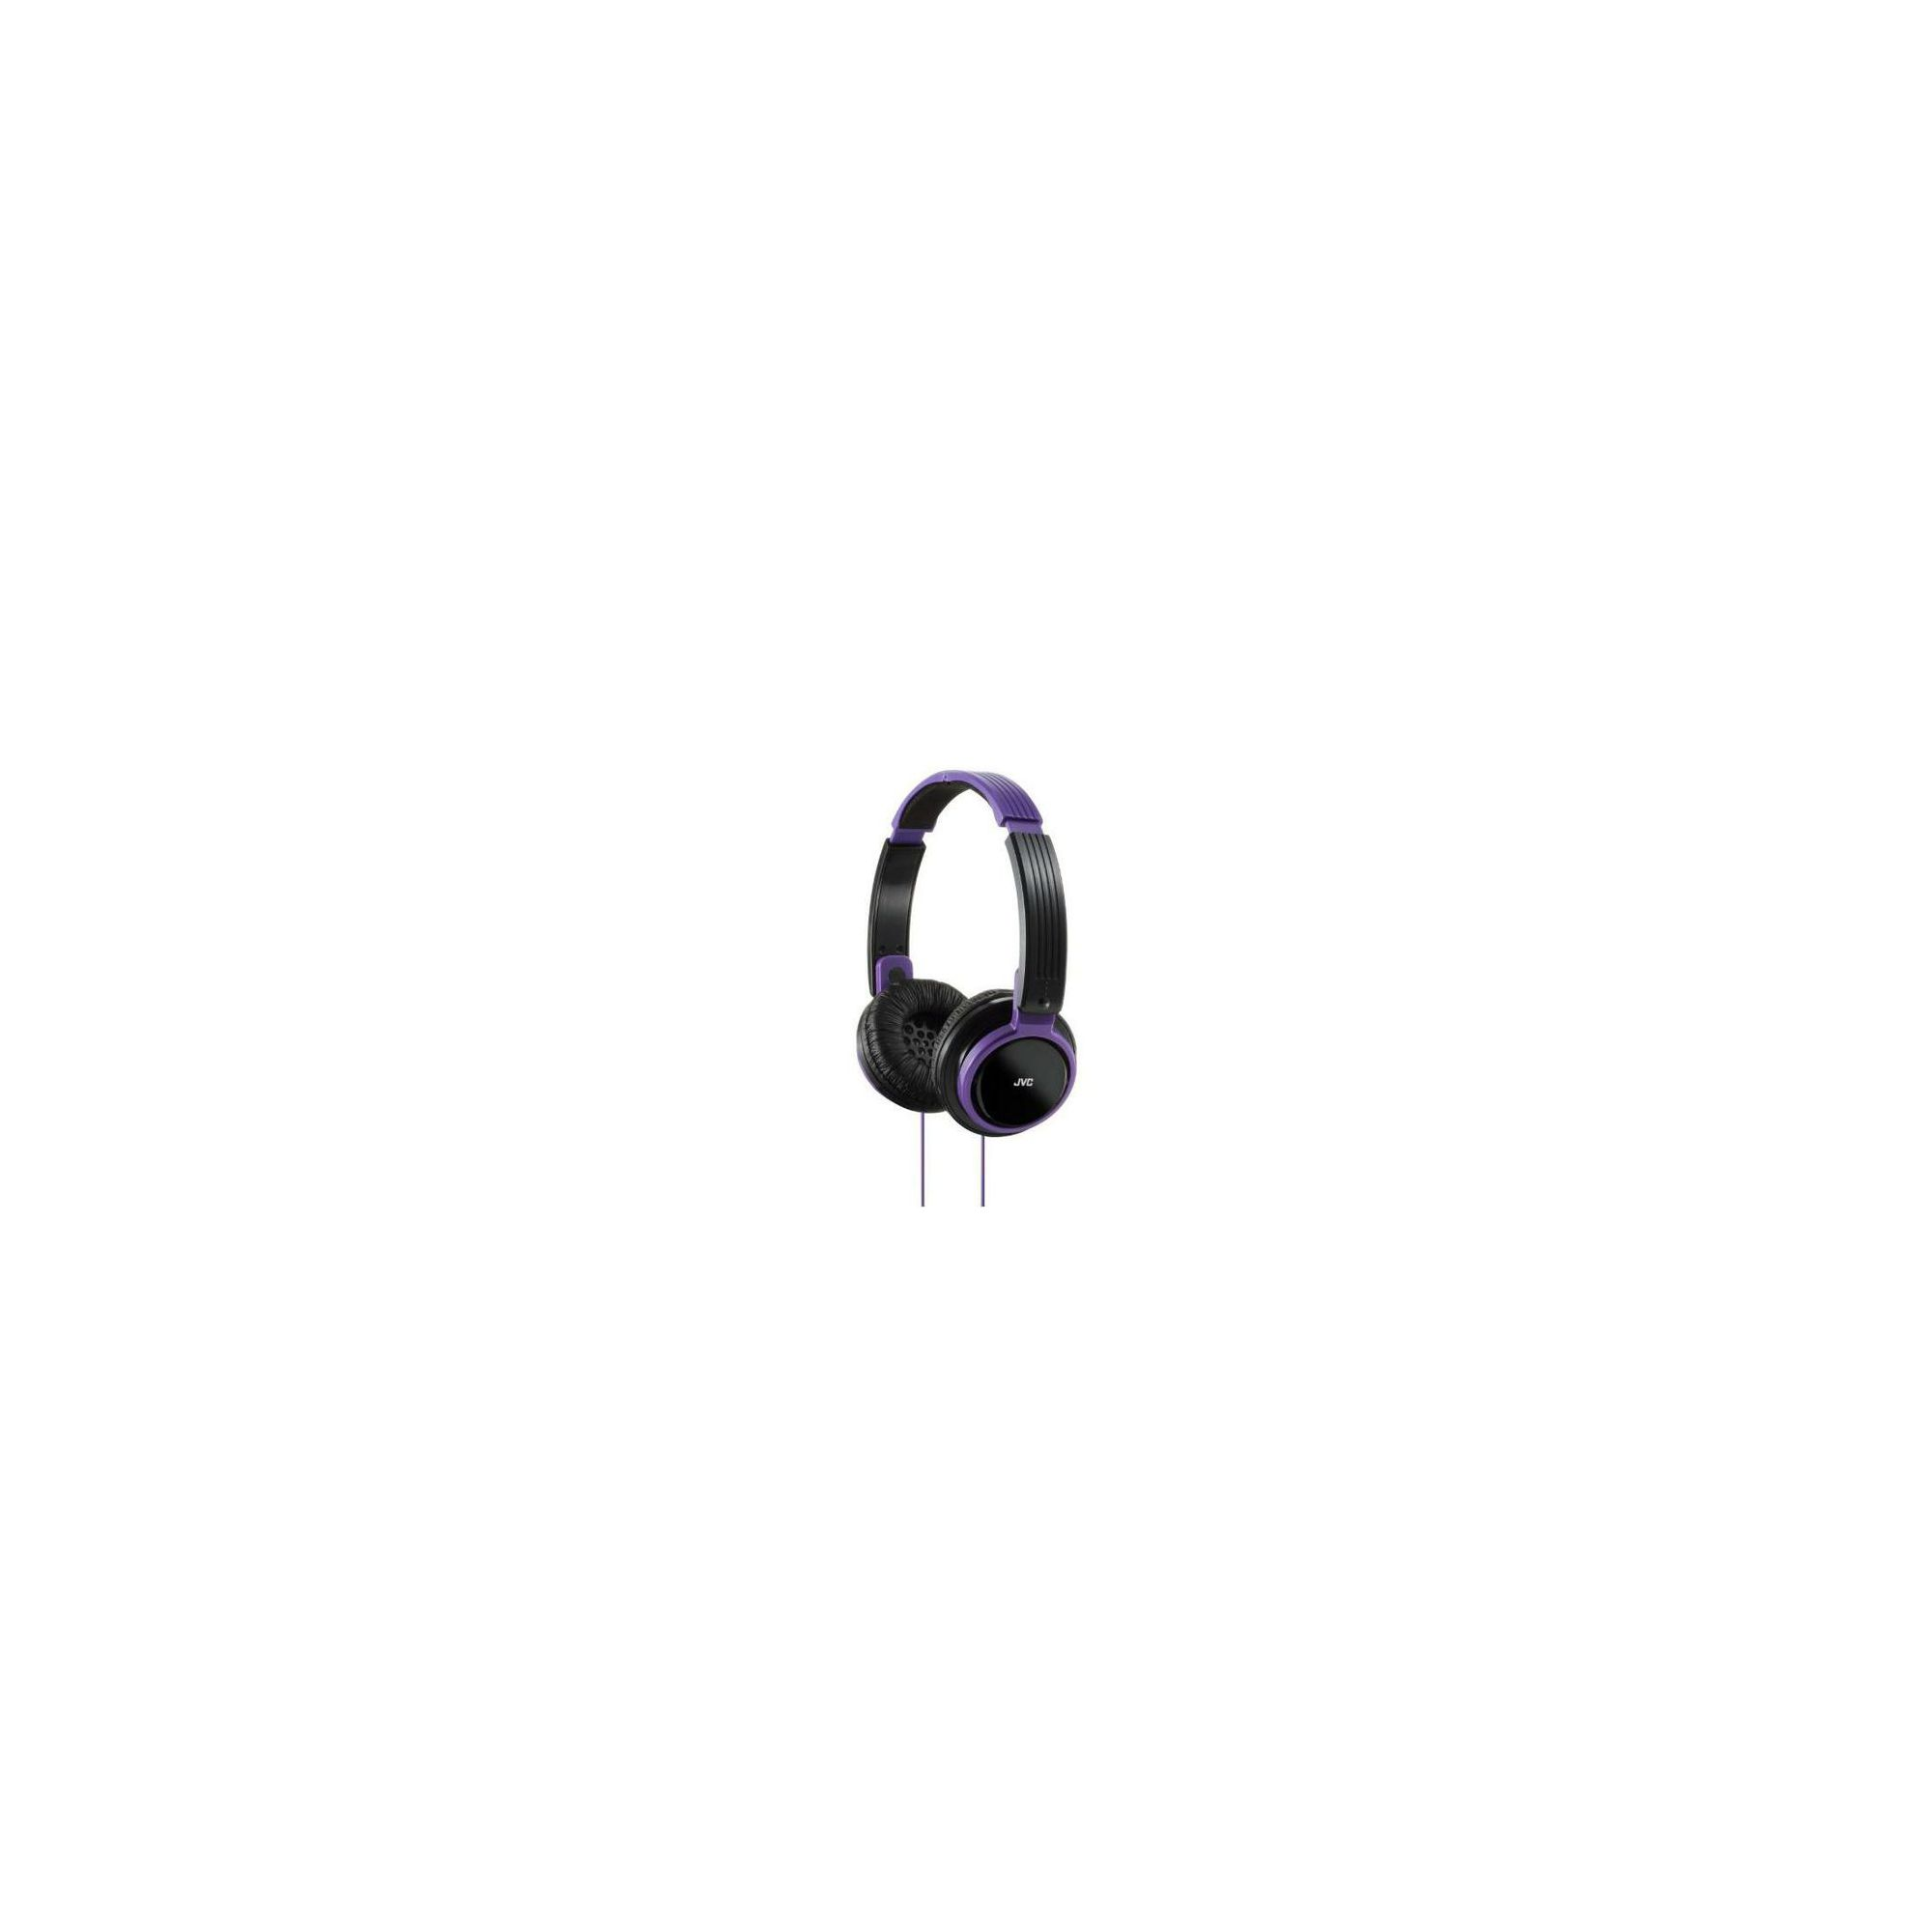 Offerta: JVC HAS200/Violet Riptide Portable On-Ear Headband Headphones - Violet